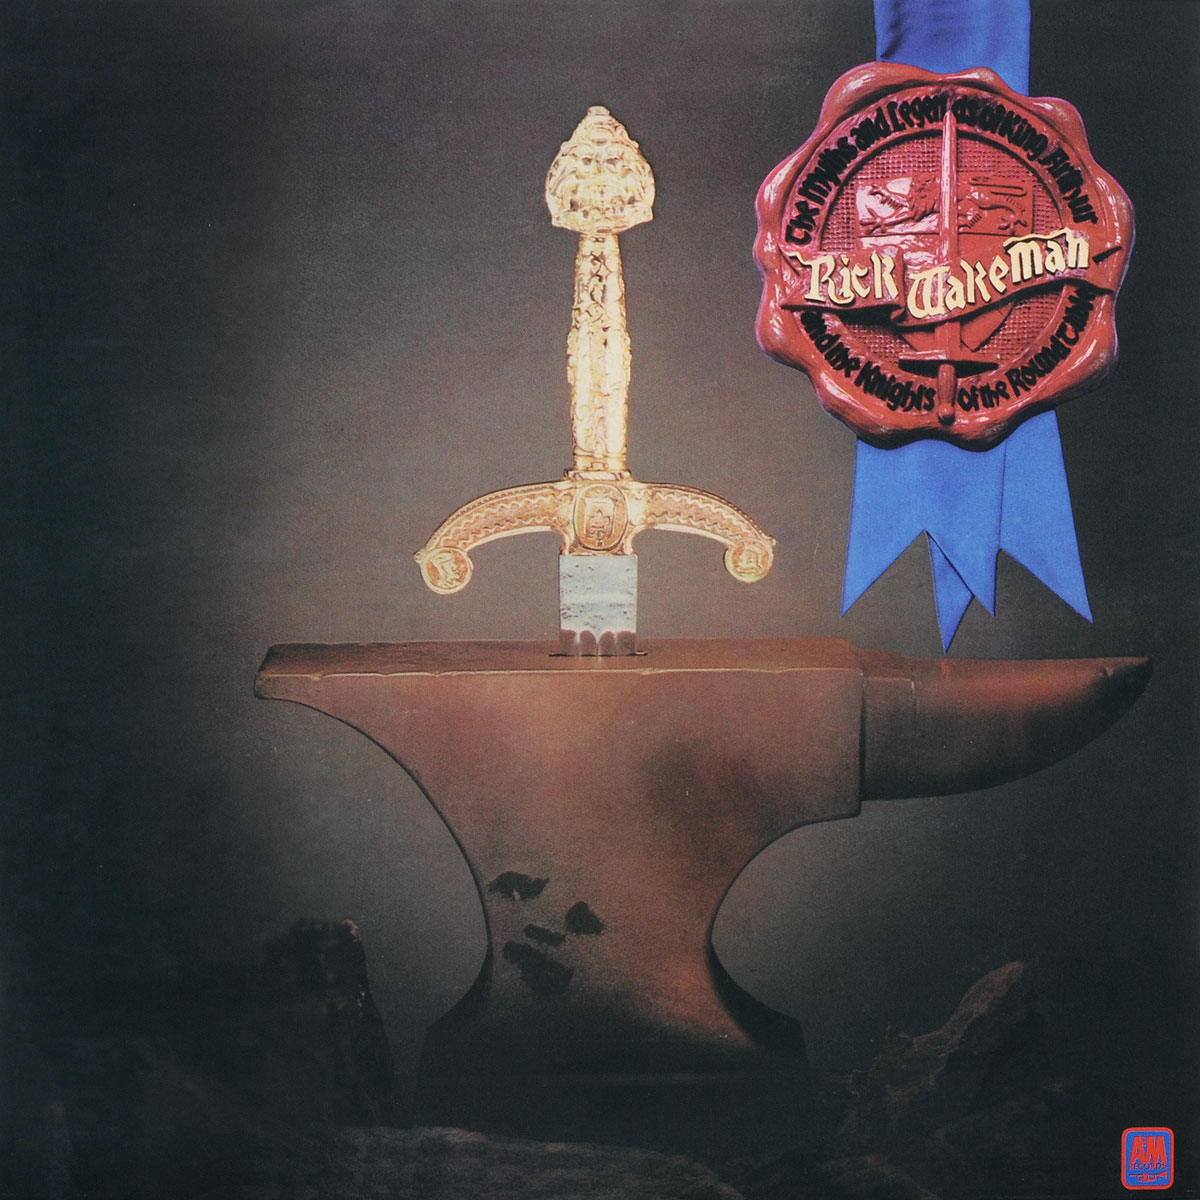 Рик Уэйкман Rick Wakeman. The Myths And Legends Of King Arthur And The Knights Of The Round Table (LP) rick wakeman rick wakeman the myths and legends of king arthur and the knights of the round table